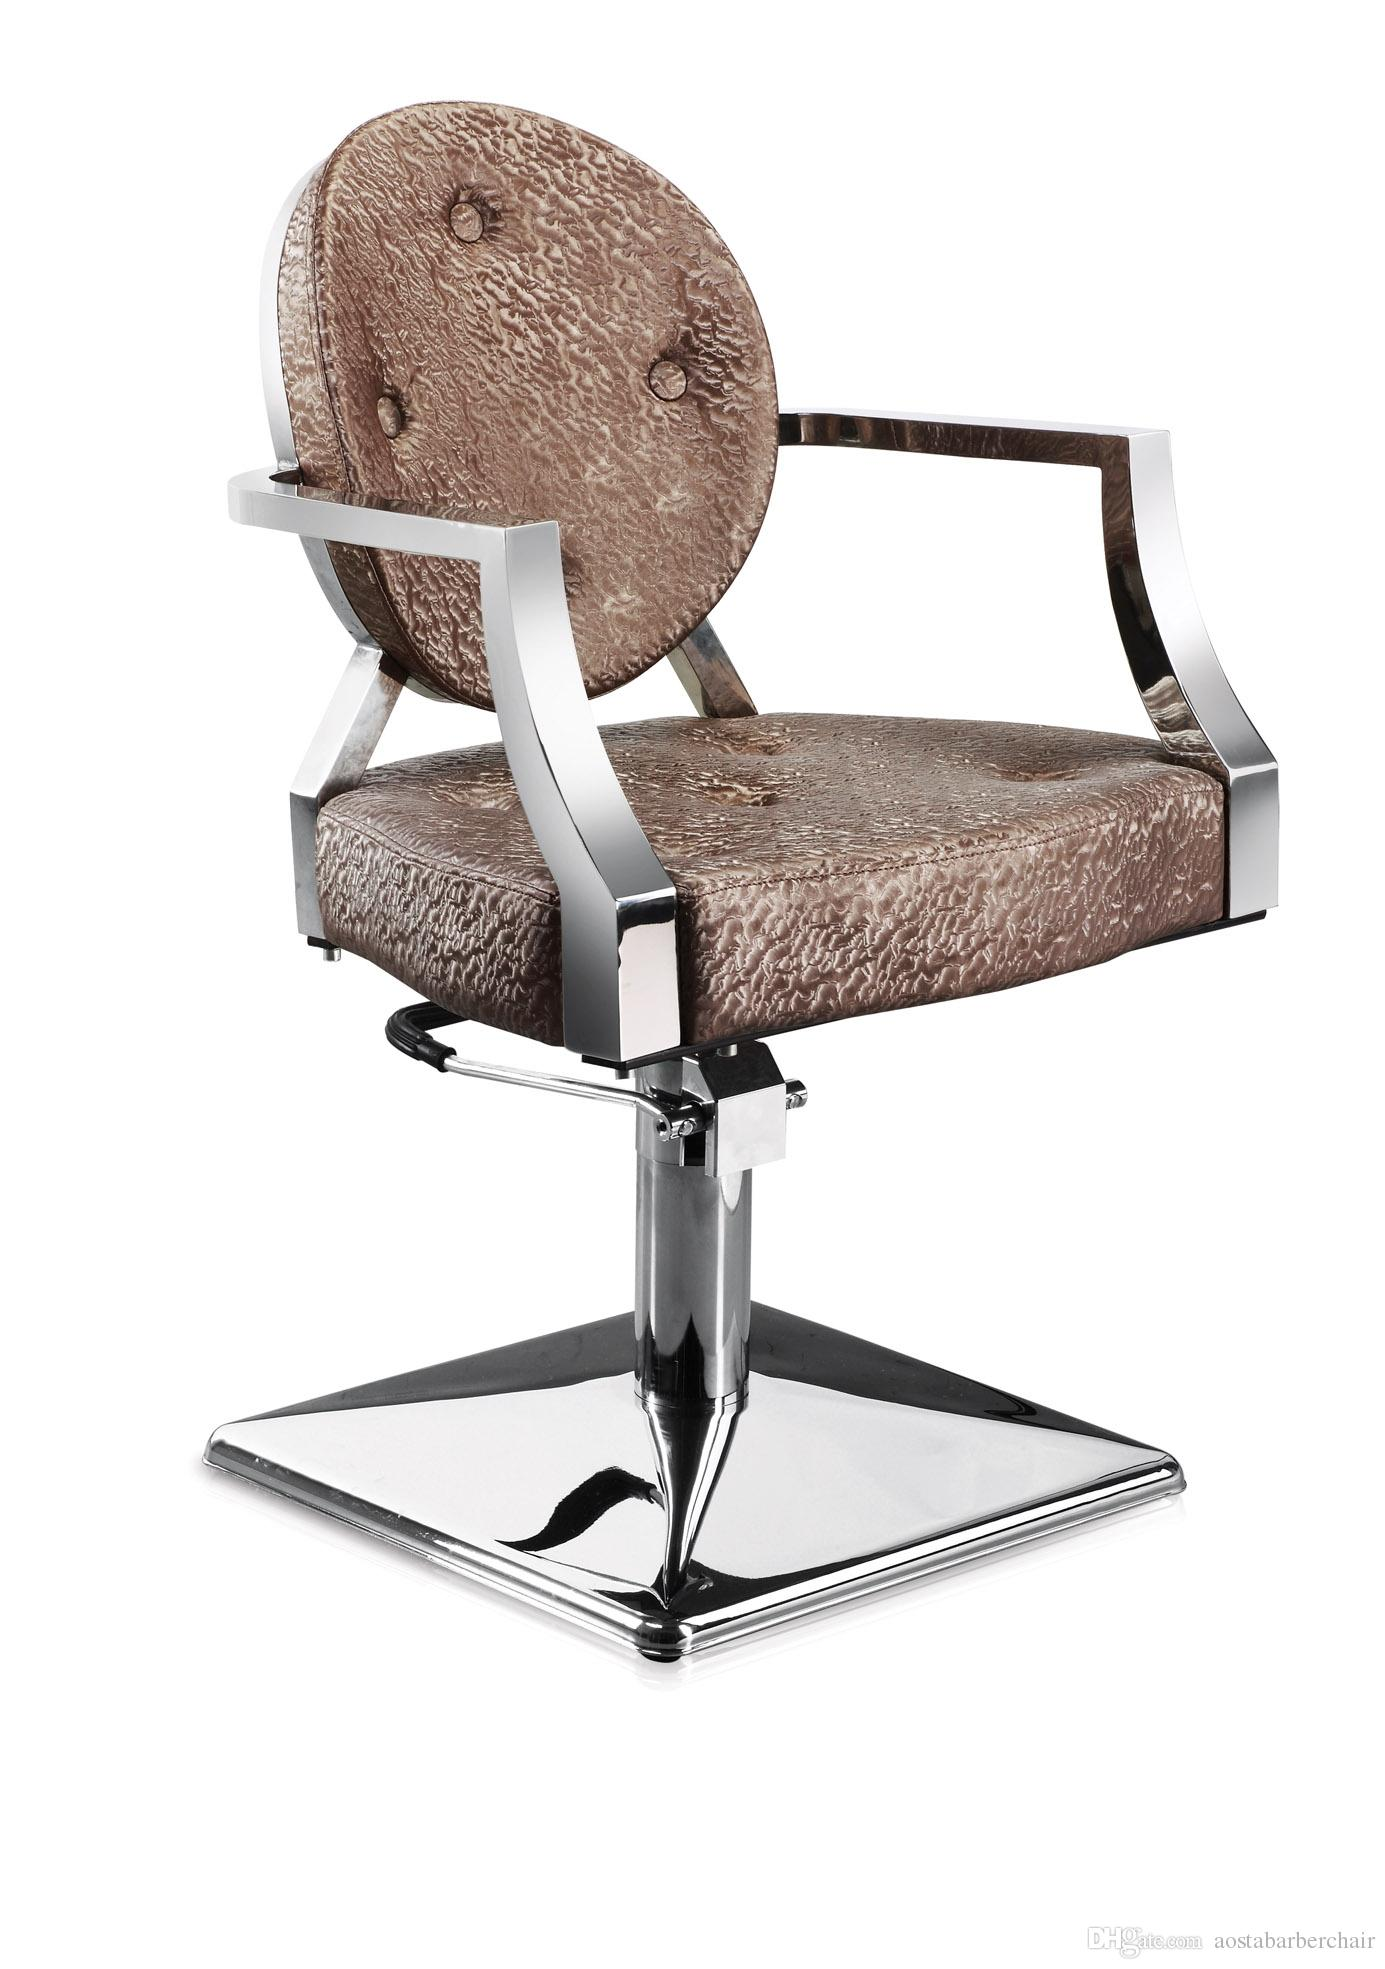 See larger image - 2018 Antique Hair Salon Styling Chair;Salon Barber Chair With